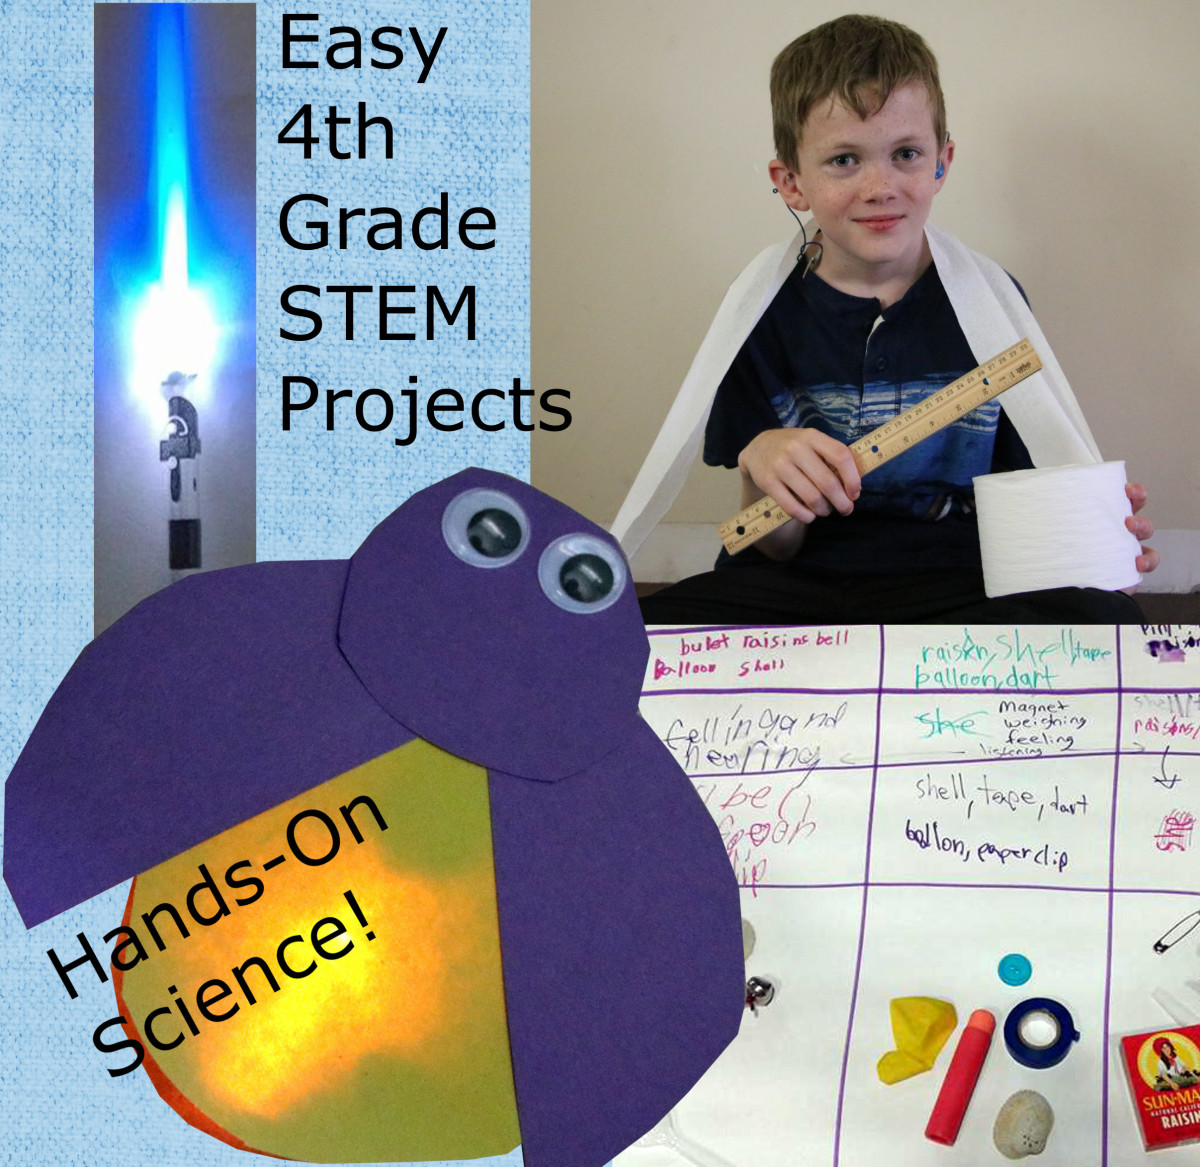 Easy Stem Activities for 4th-Grade Students